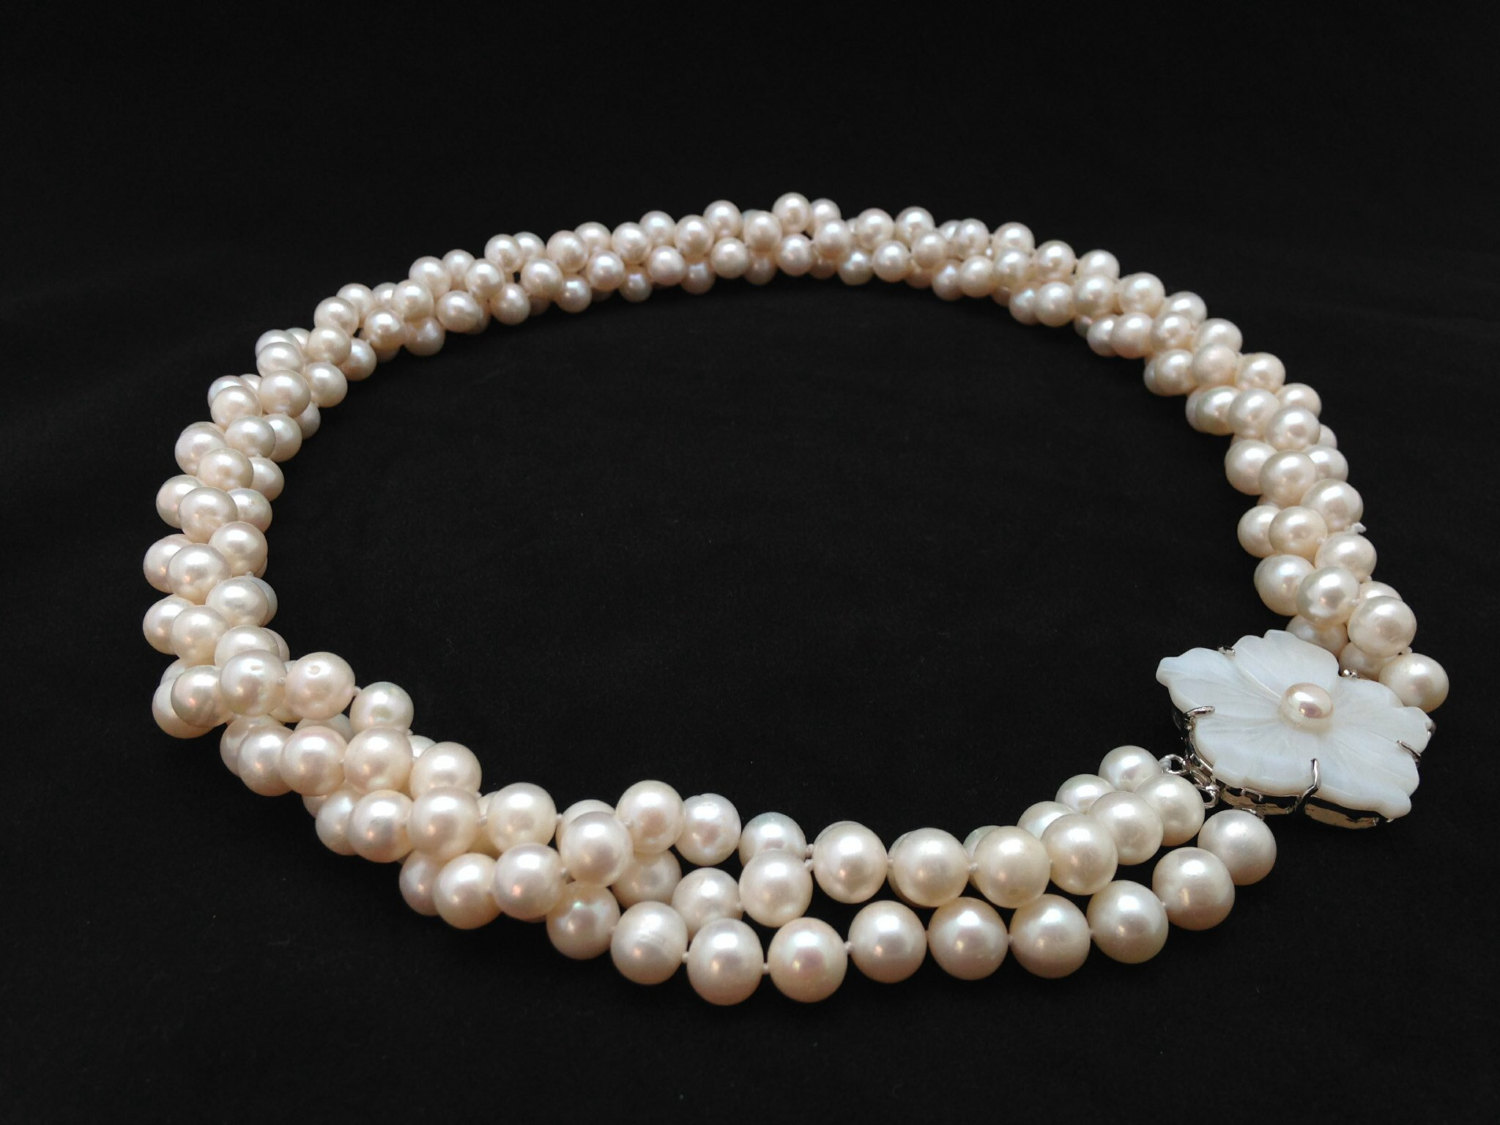 Long Pearl Necklace, 23 Inches, Genuine Pearl Necklace, Twisted Triple  Strand Pearl Necklace